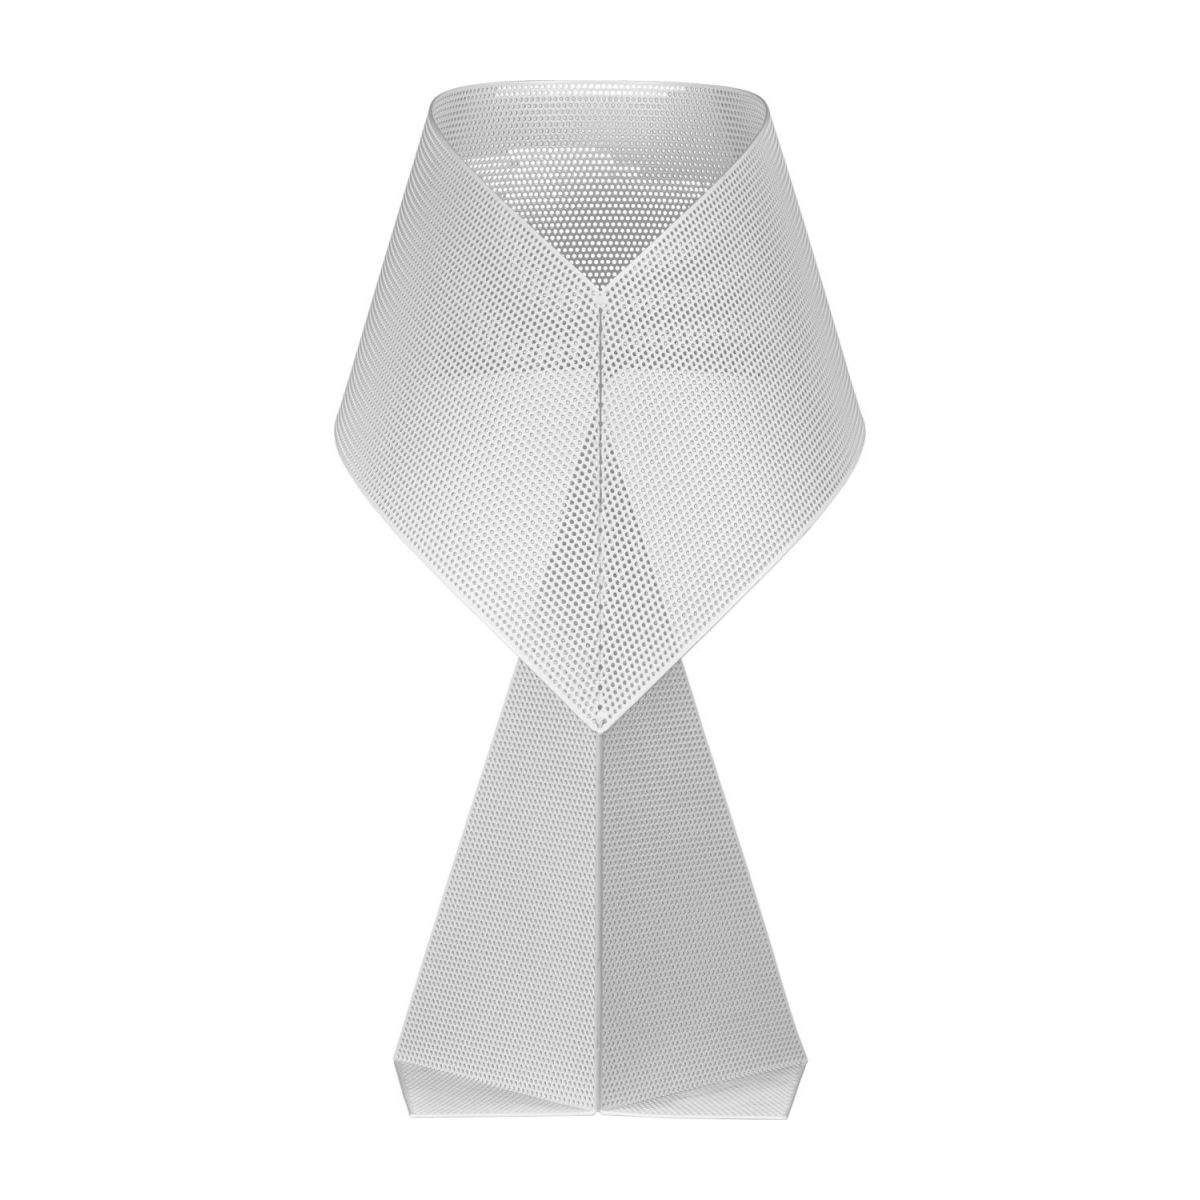 Lampe de table en métal perforé - Blanc - 50 cm n°3